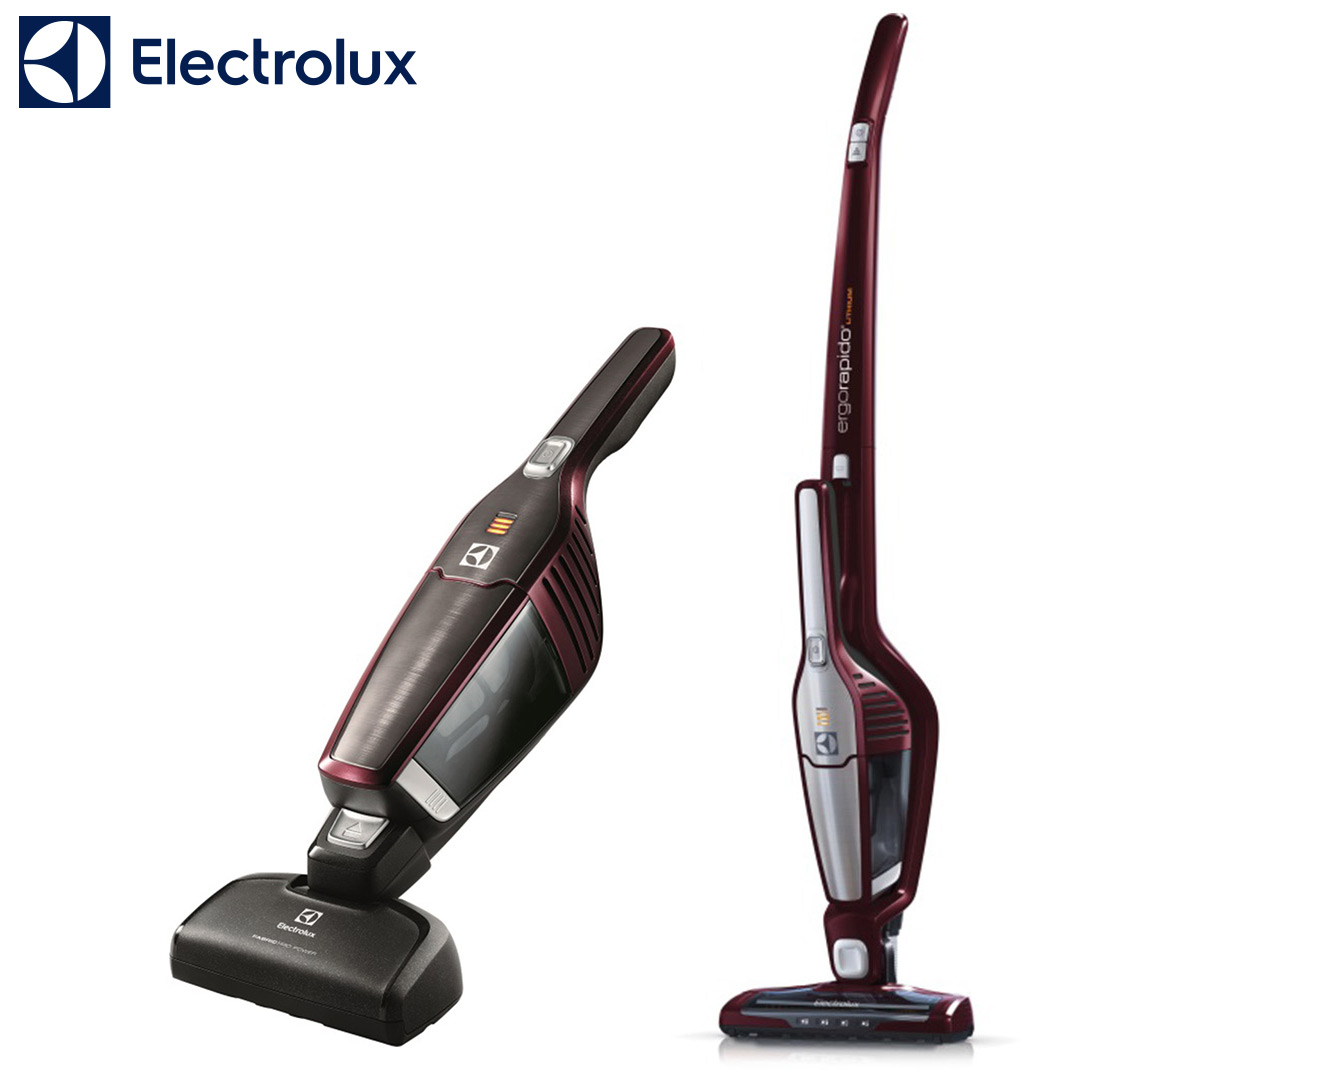 electrolux ergorapido 5 series pet power bagless stick vacuum groceries. Black Bedroom Furniture Sets. Home Design Ideas